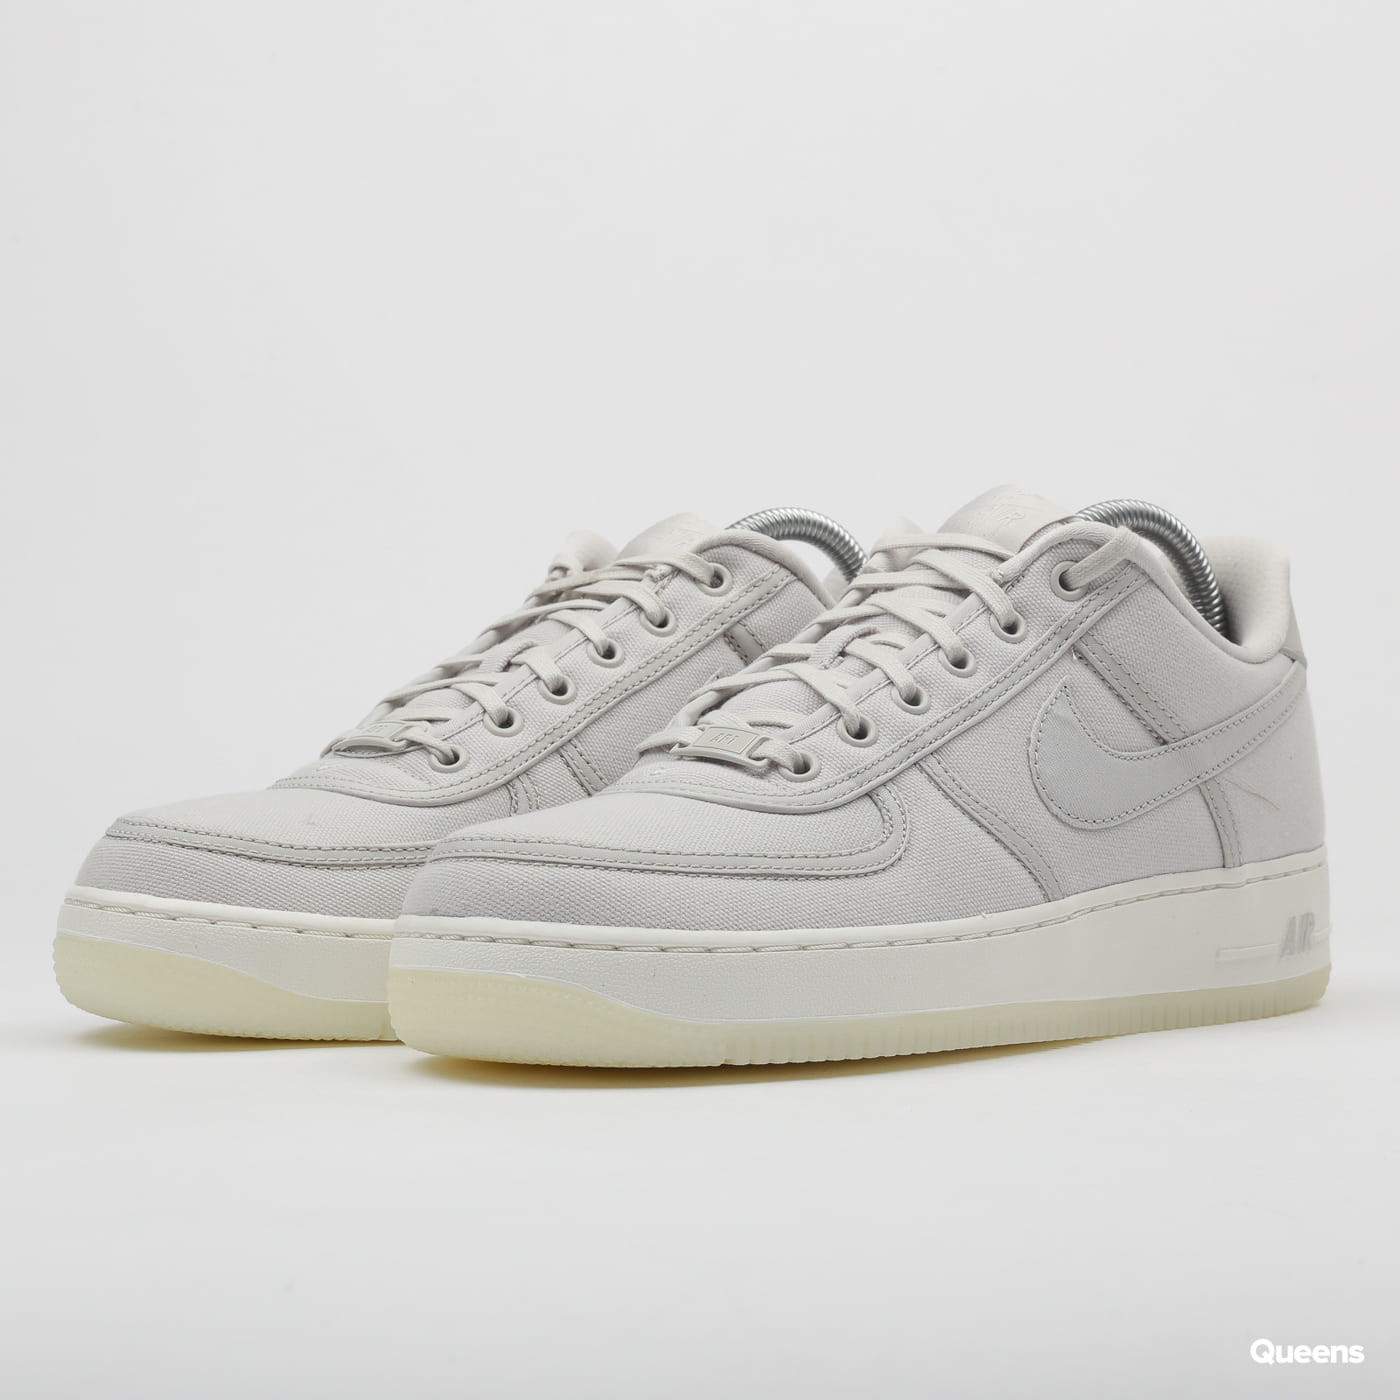 ca2ac6365 Sneakers Nike Air Force 1 Low Retro QS Canvas light bone / light bone -  sail (AH1067-003) – Queens 💚